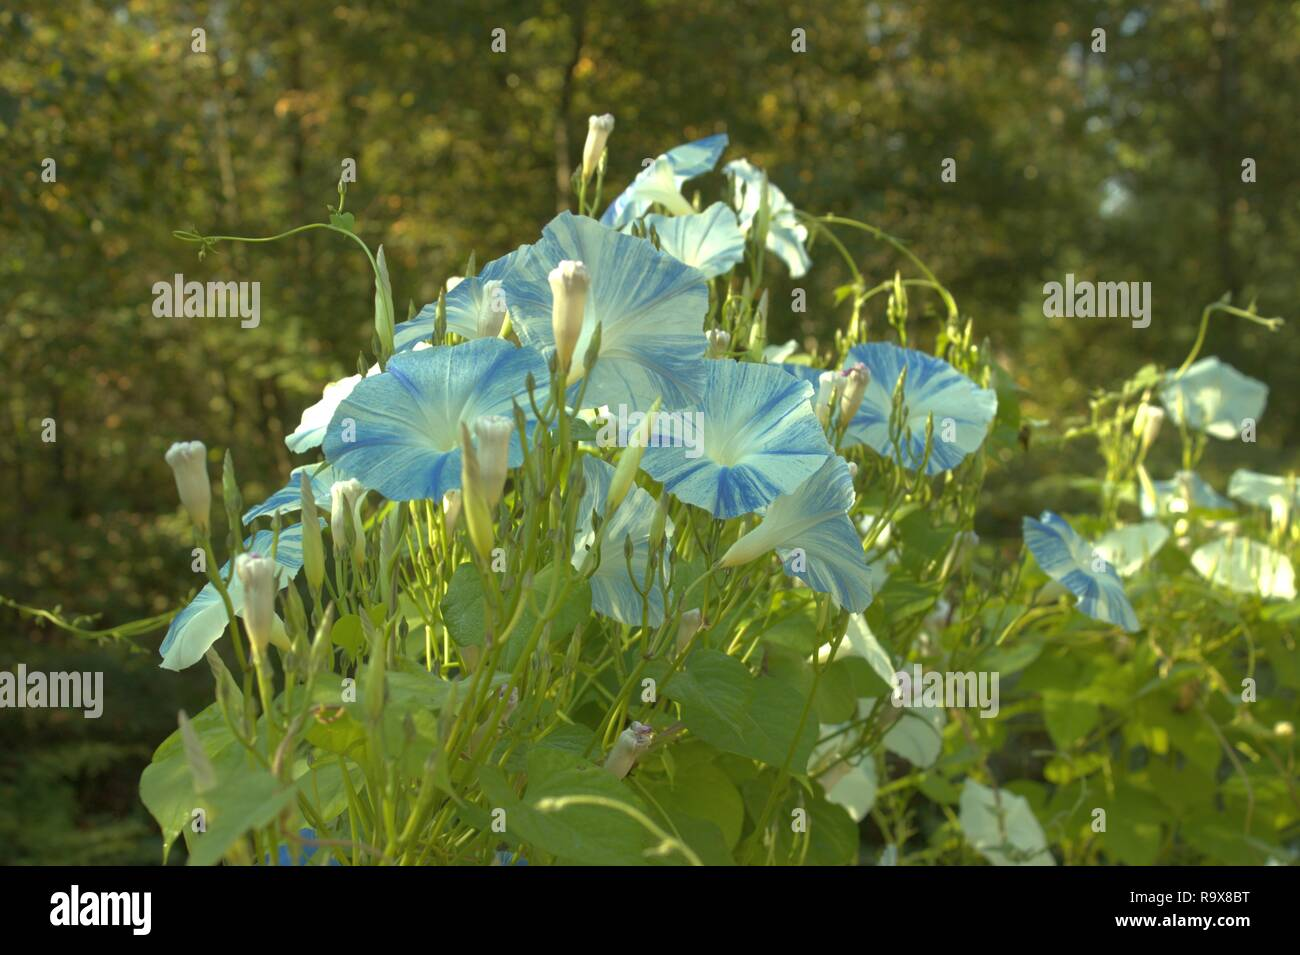 Blue And White Morning Glories In The Sun - Stock Image